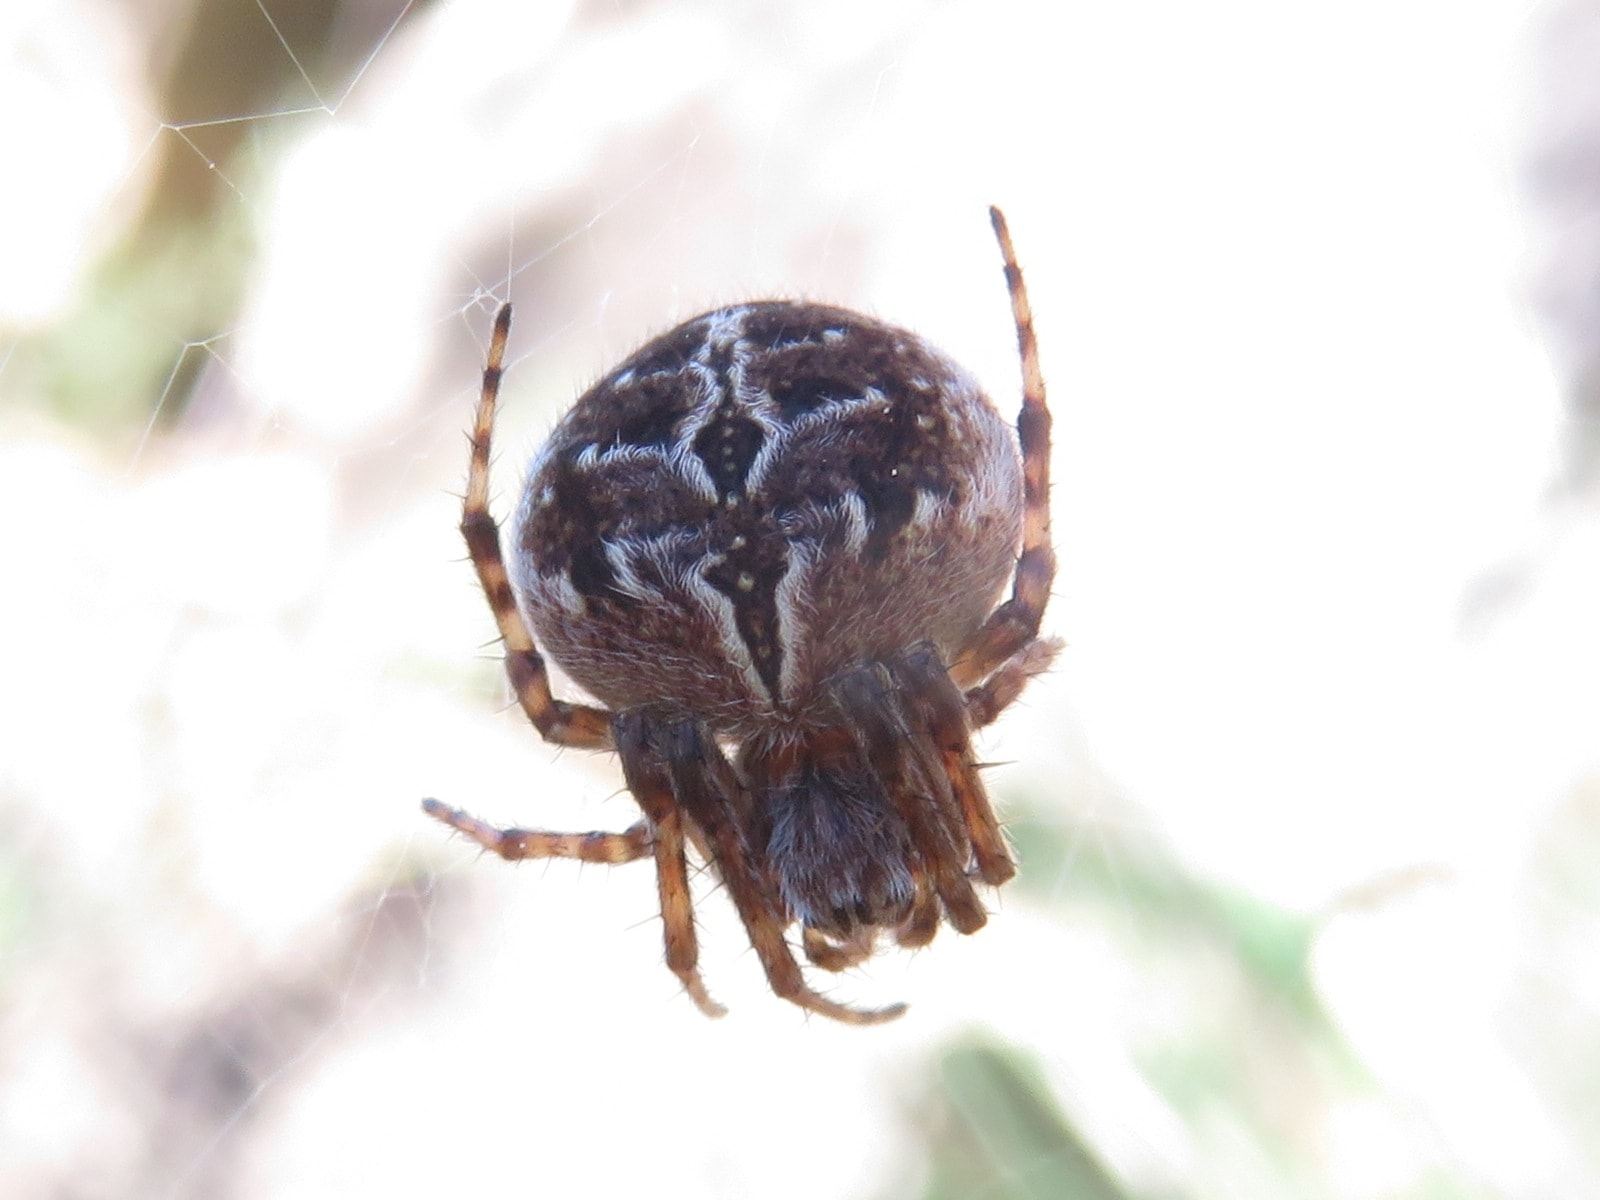 Picture of Agalenatea redii (Gorse Orb-weaver) - Female - Dorsal